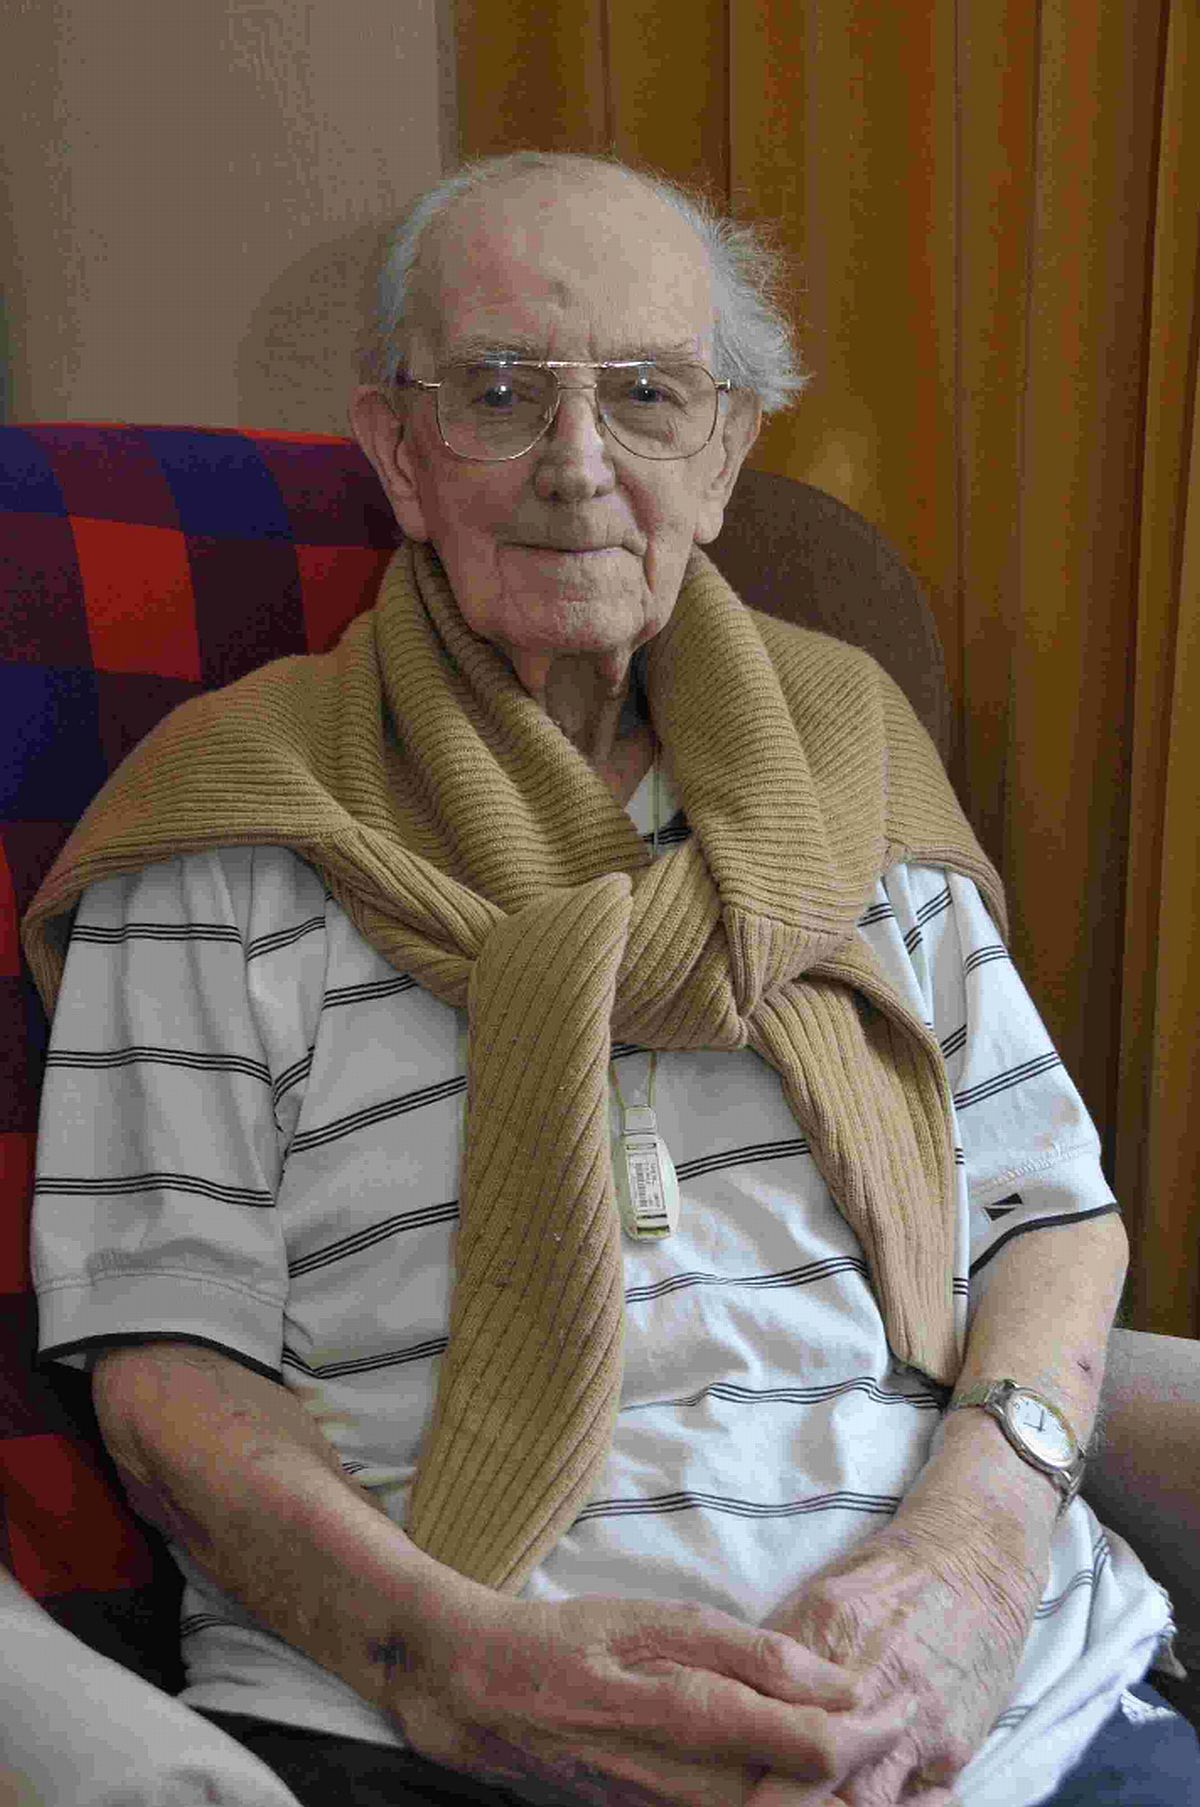 HEROES OF D-DAY: Bertie 'Boy' Male remembers the Longest Day